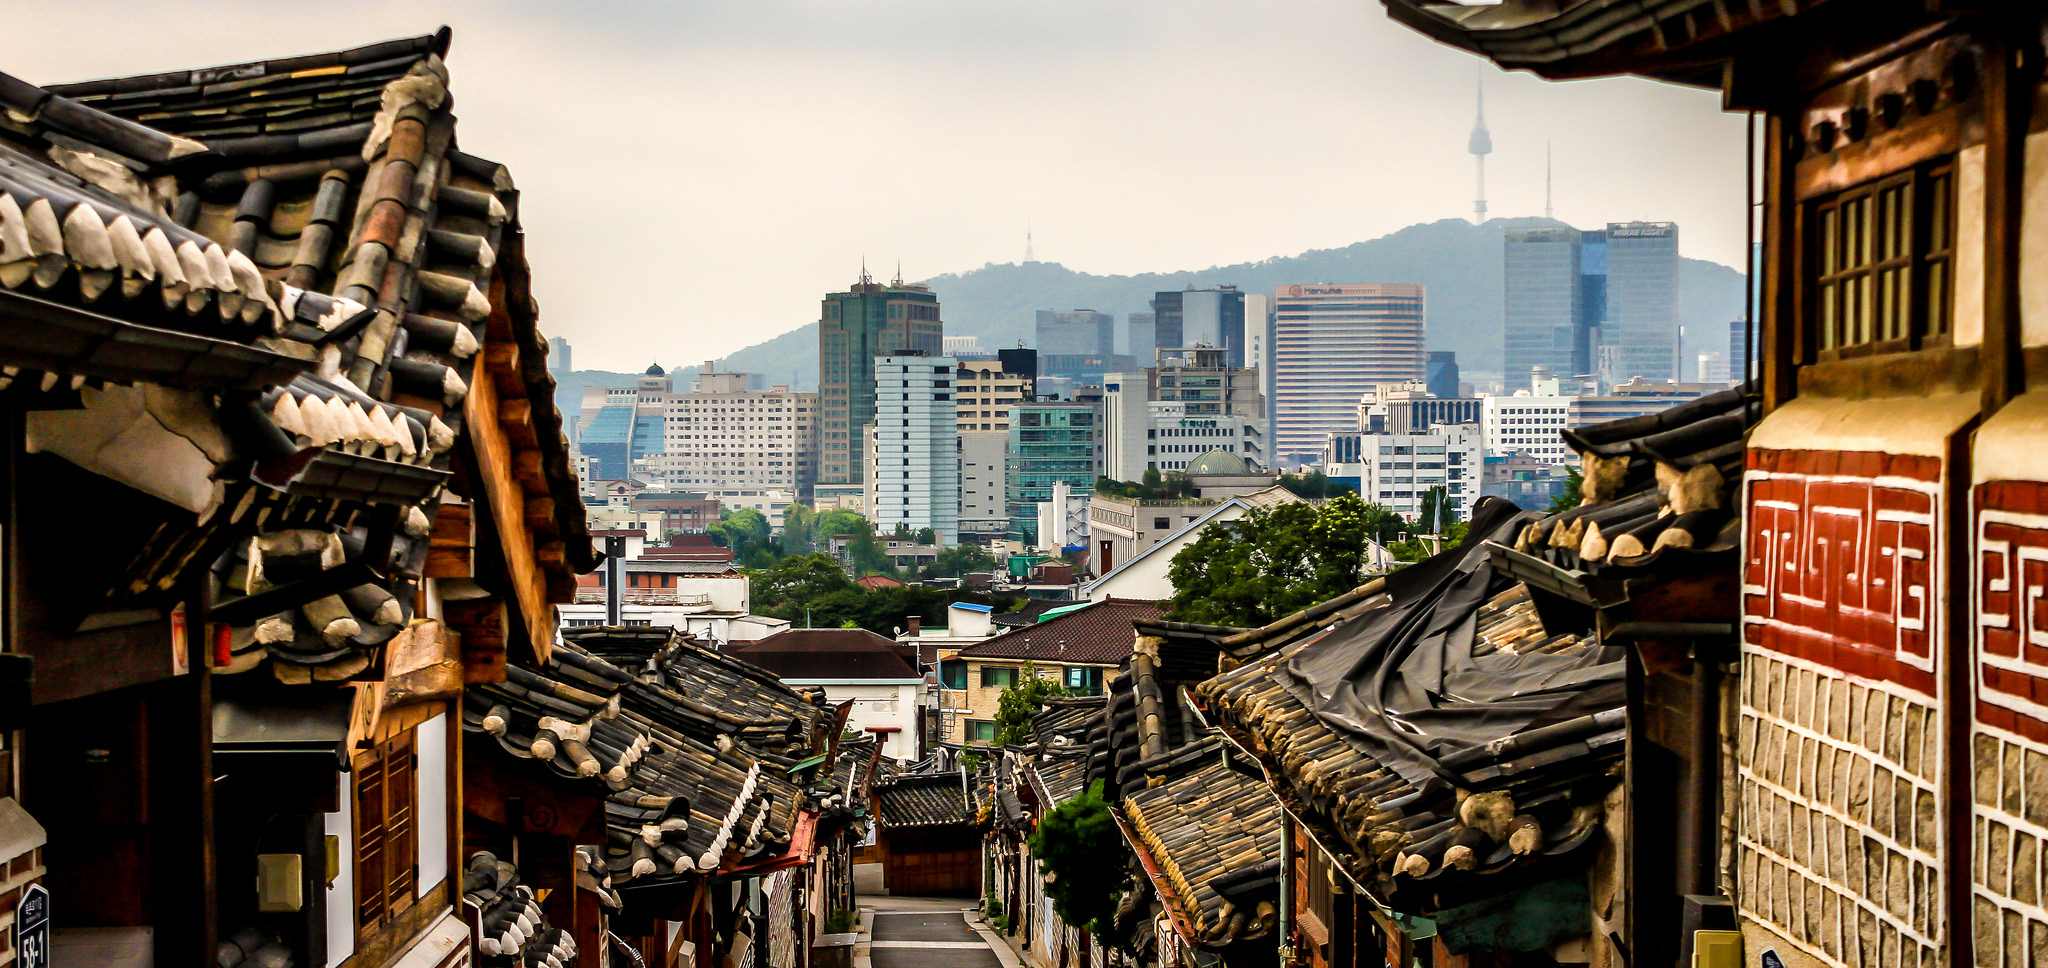 Bukchon Hanok Village, Seoul, South Korea (Doug Sun Beams via Flickr)